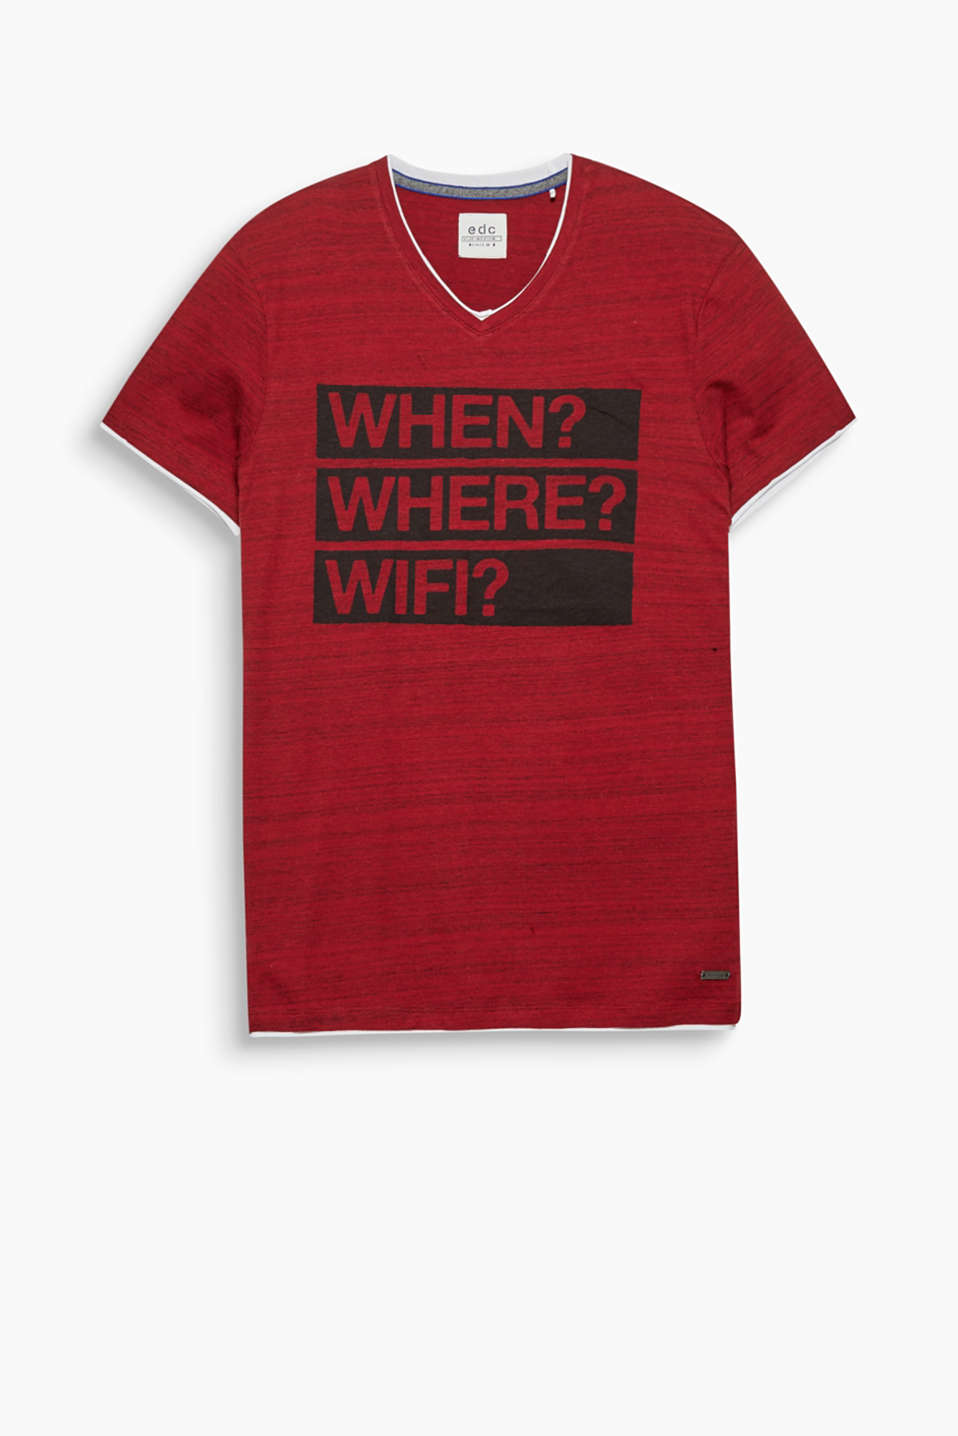 Up-to-date! There is always a time and place to hook up with this layered-effect, slogan T-shirt.